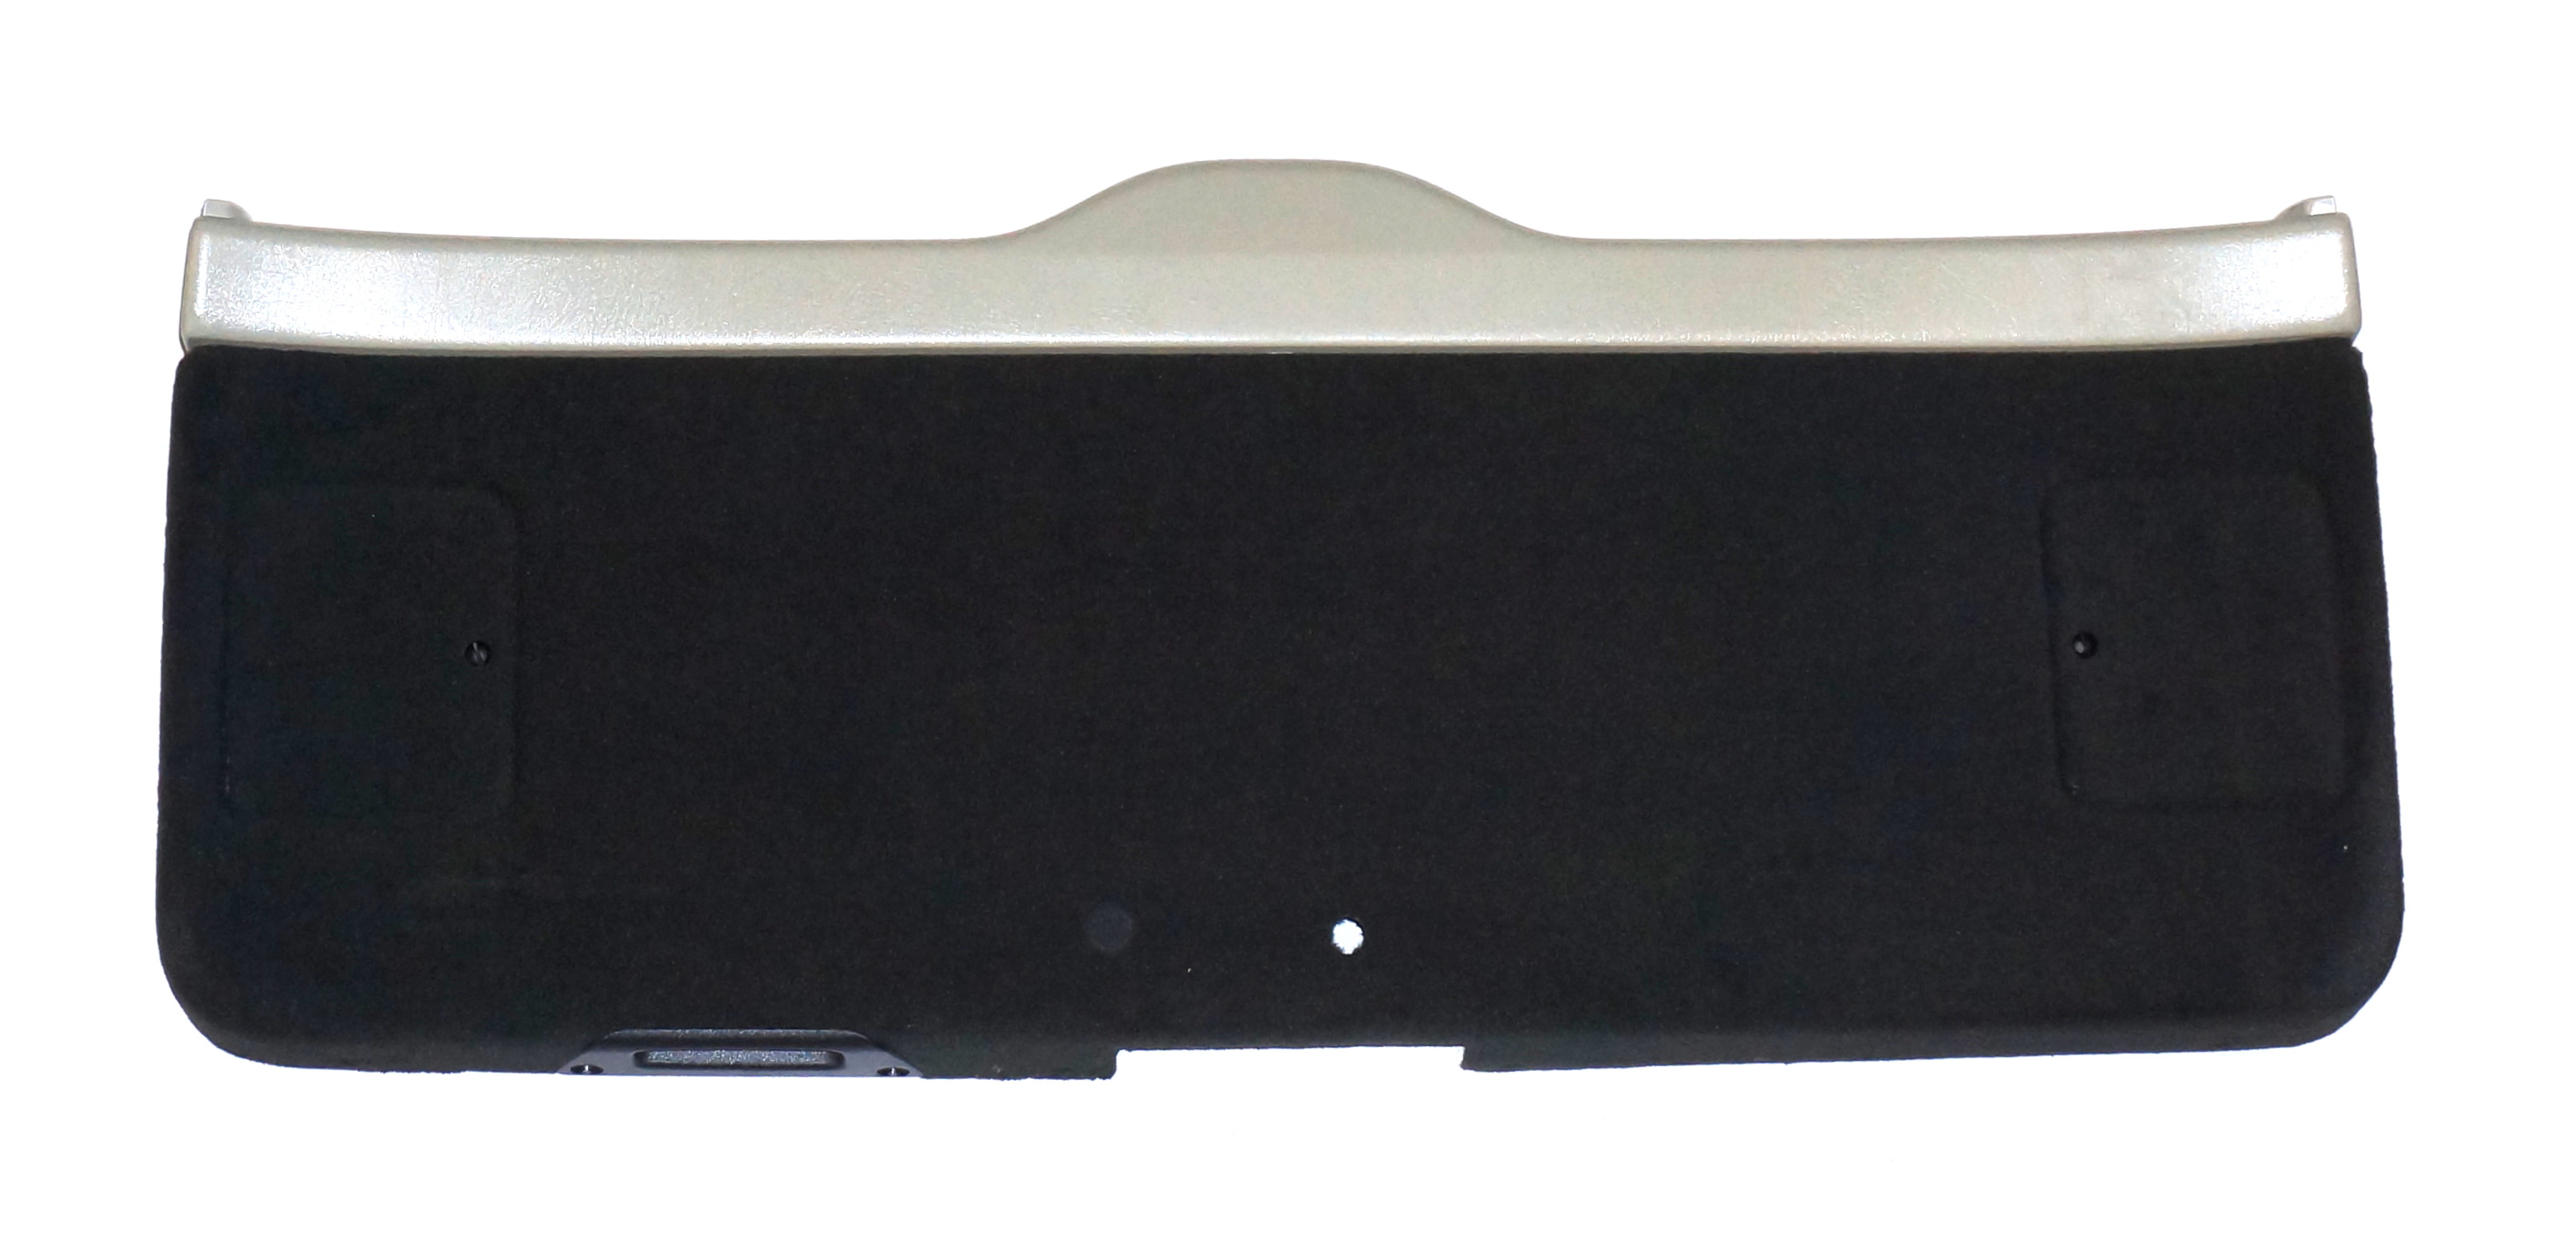 Luggage Compartment Lining (Black)